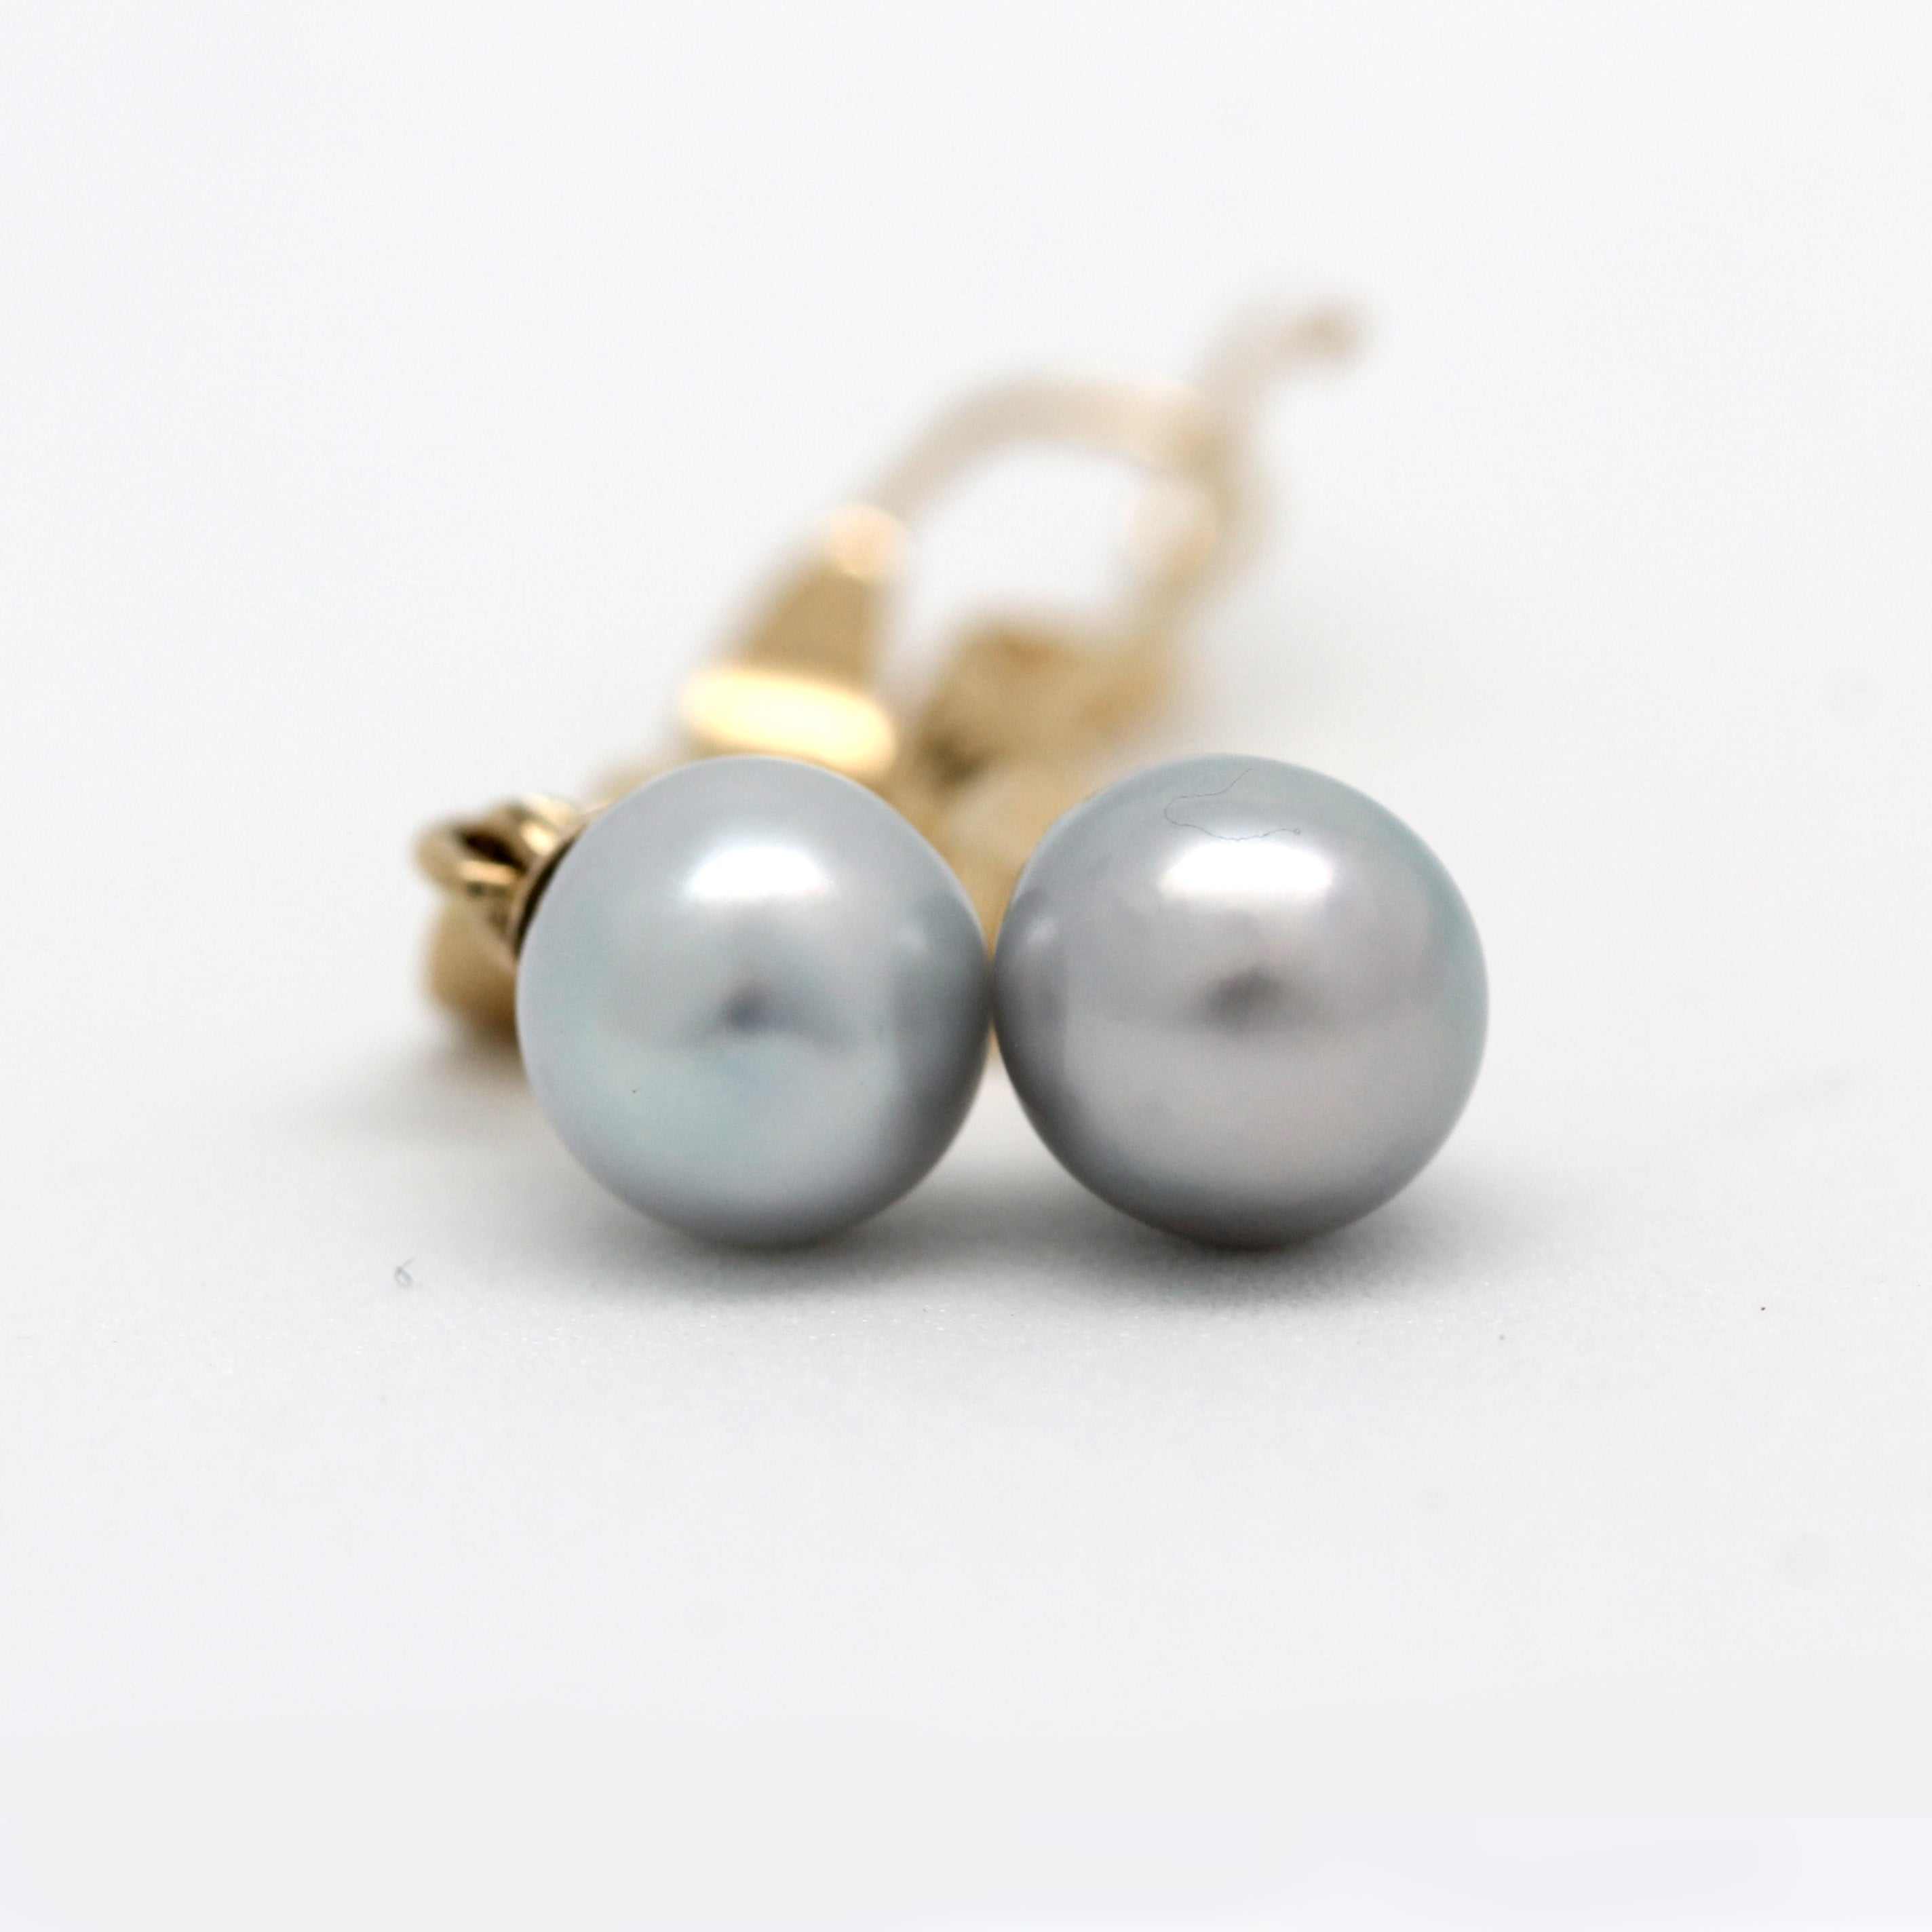 14K Yellow Gold Hanging Earrings with Sea of Cortez Pearls